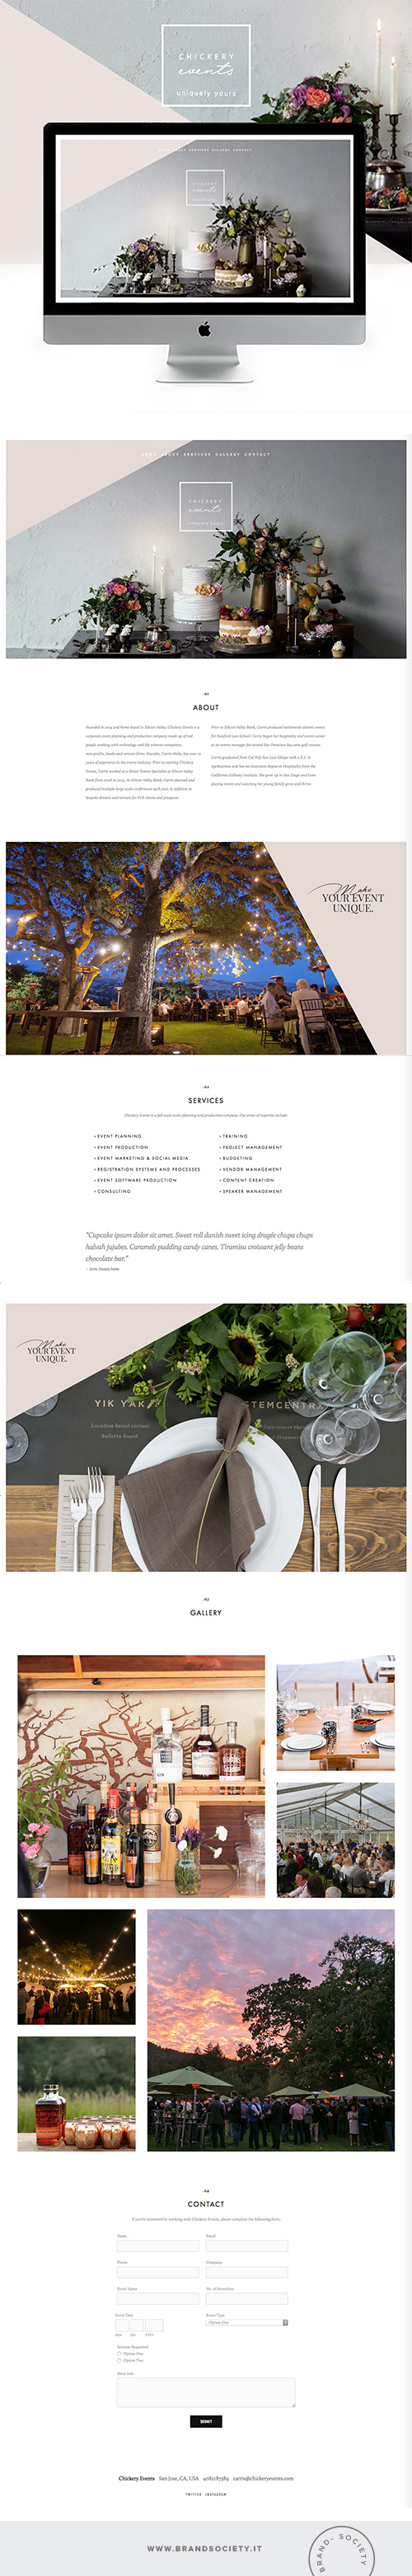 CHICKERY EVENTS    SERVICES  || SQUARESPACE WEBSITE | PORTFOLIO DESIGN | BRANDING | COLOR PALETTE